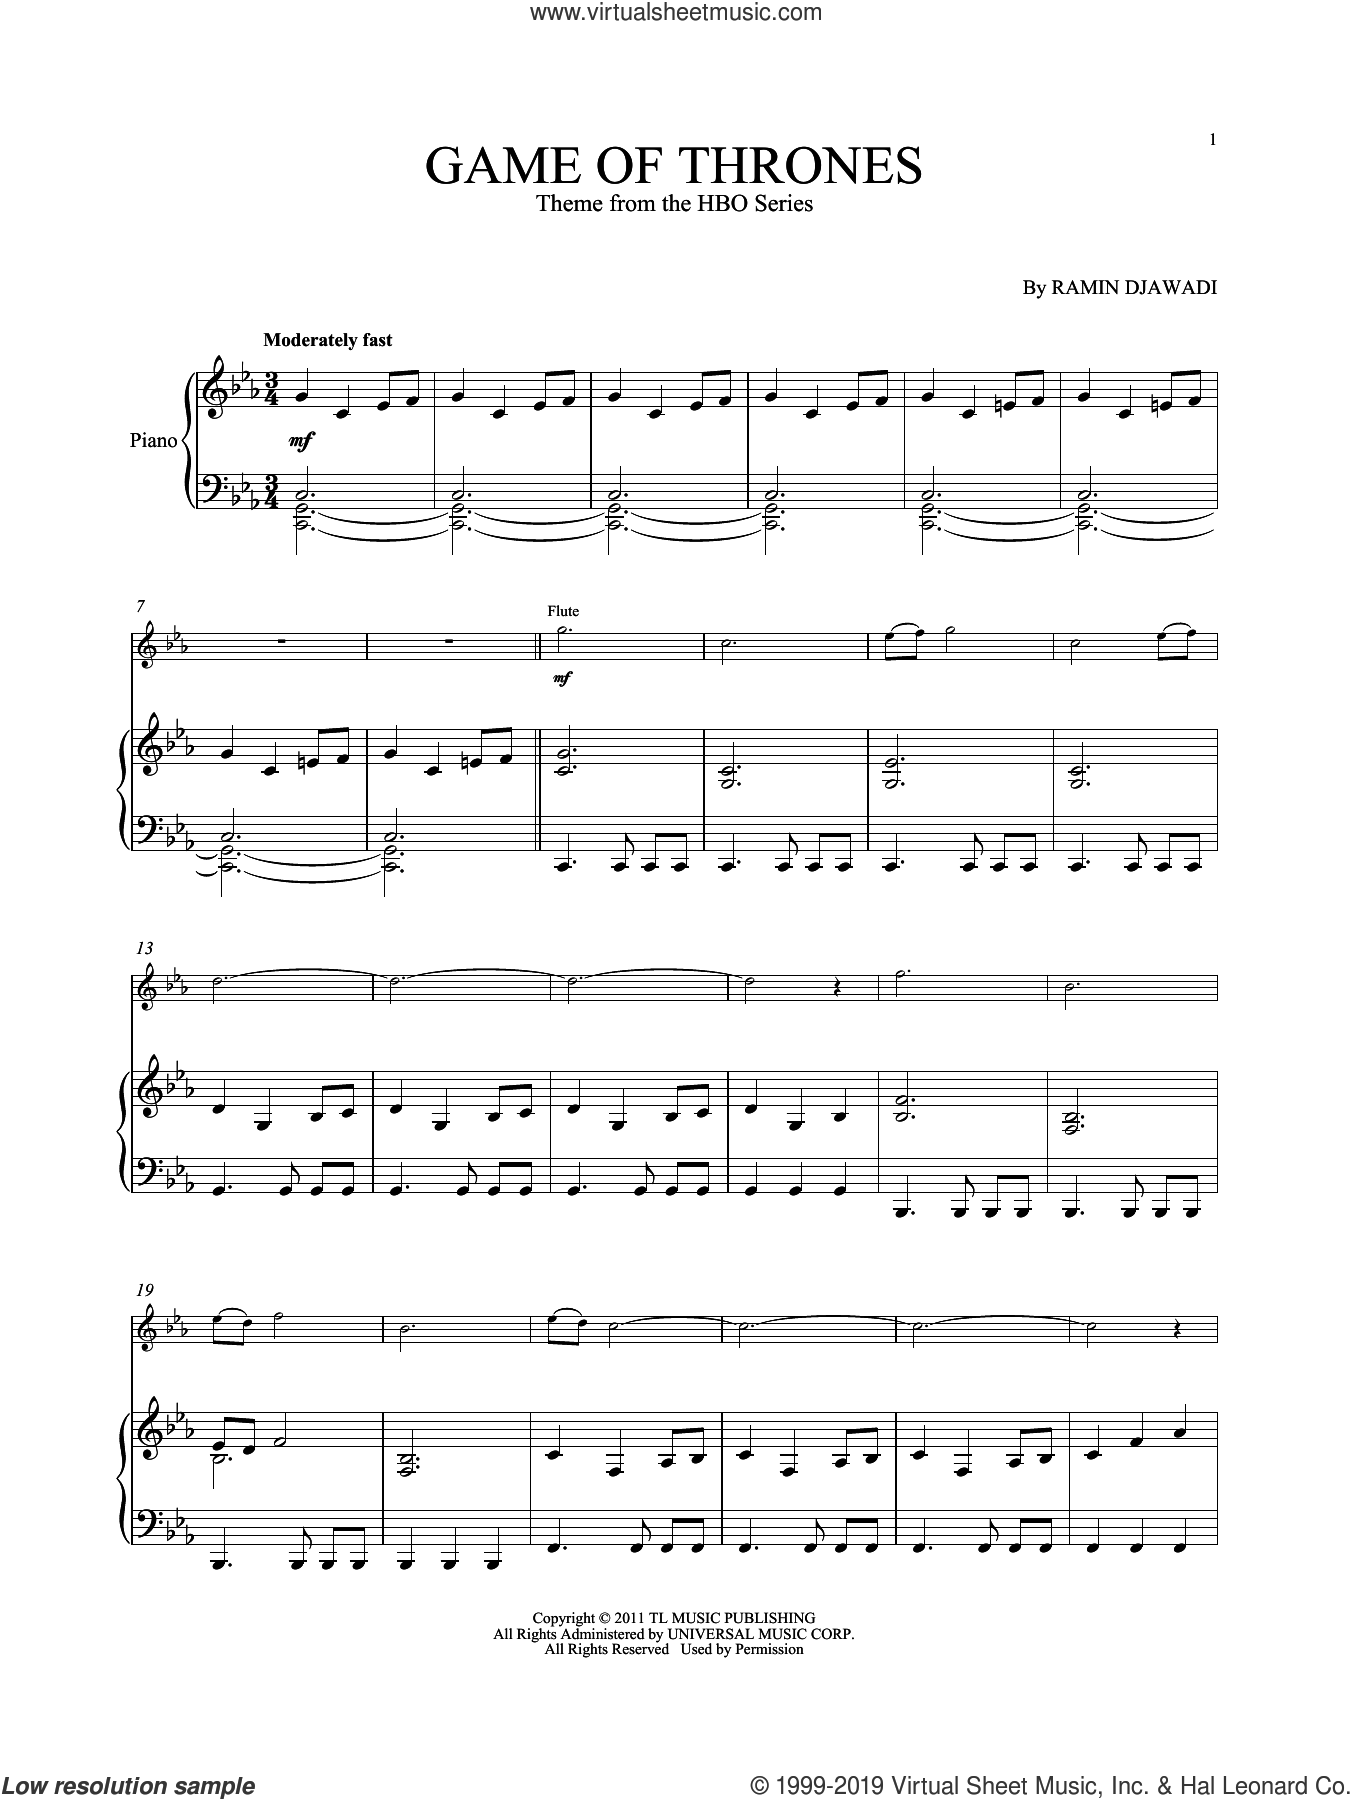 Game Of Thrones sheet music for flute and piano by Ramin Djawadi, intermediate skill level